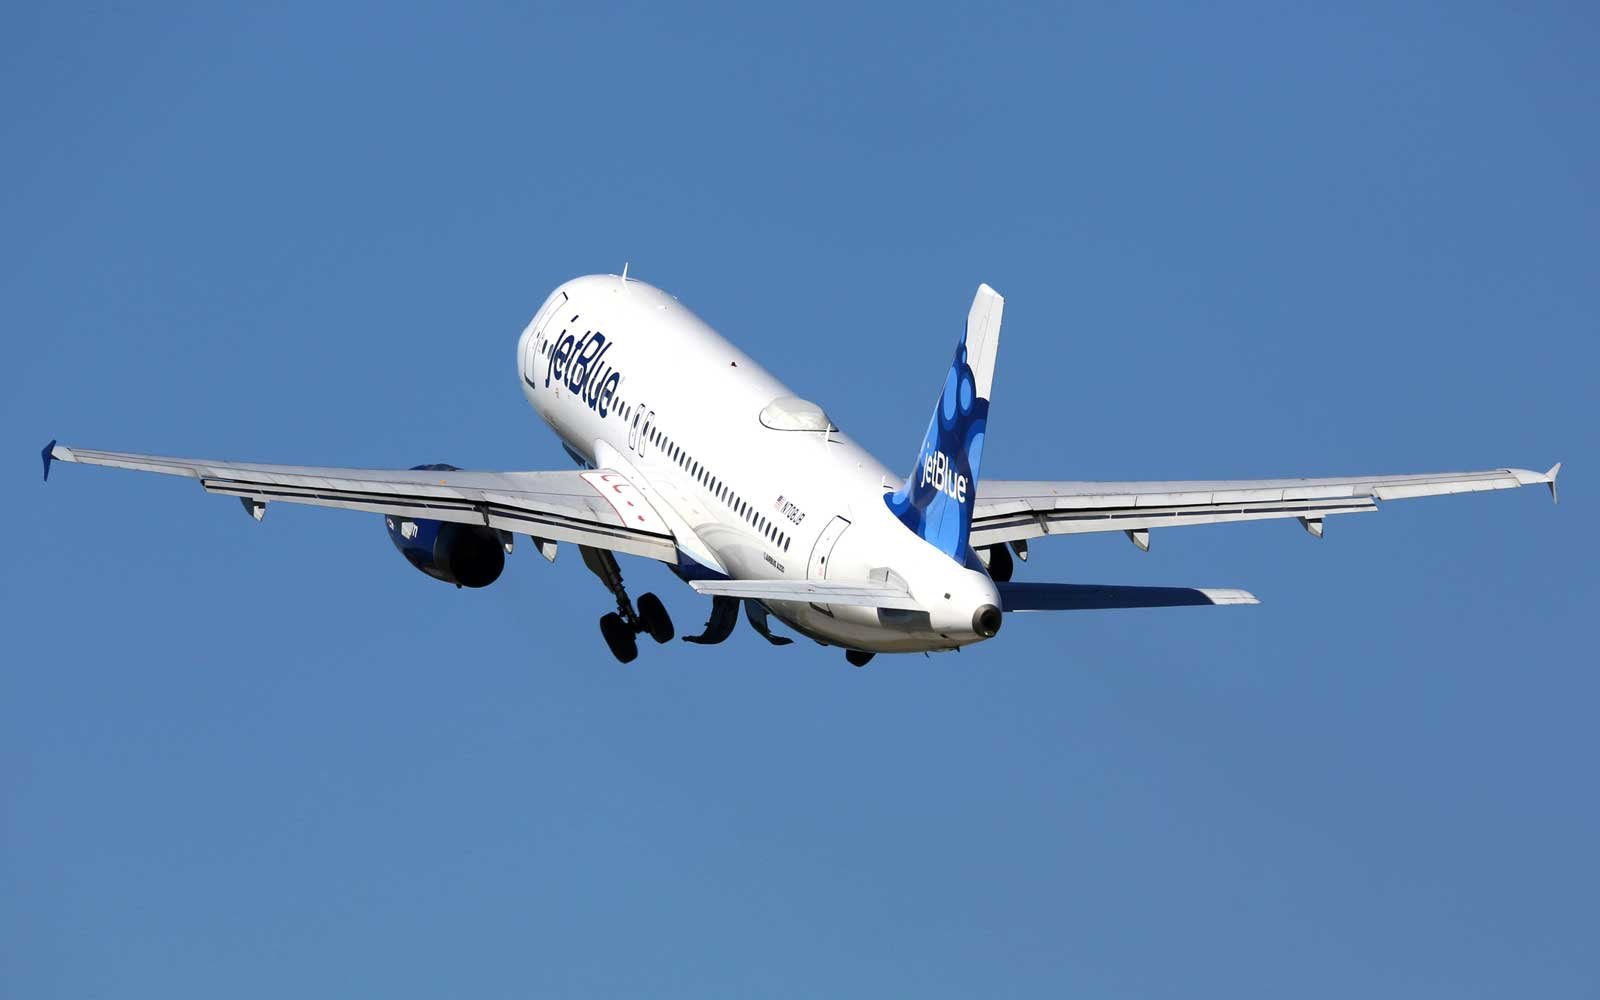 A Jetblue Airways Airbus A320 taking off from Fort Lauderdale Airport (FLL)